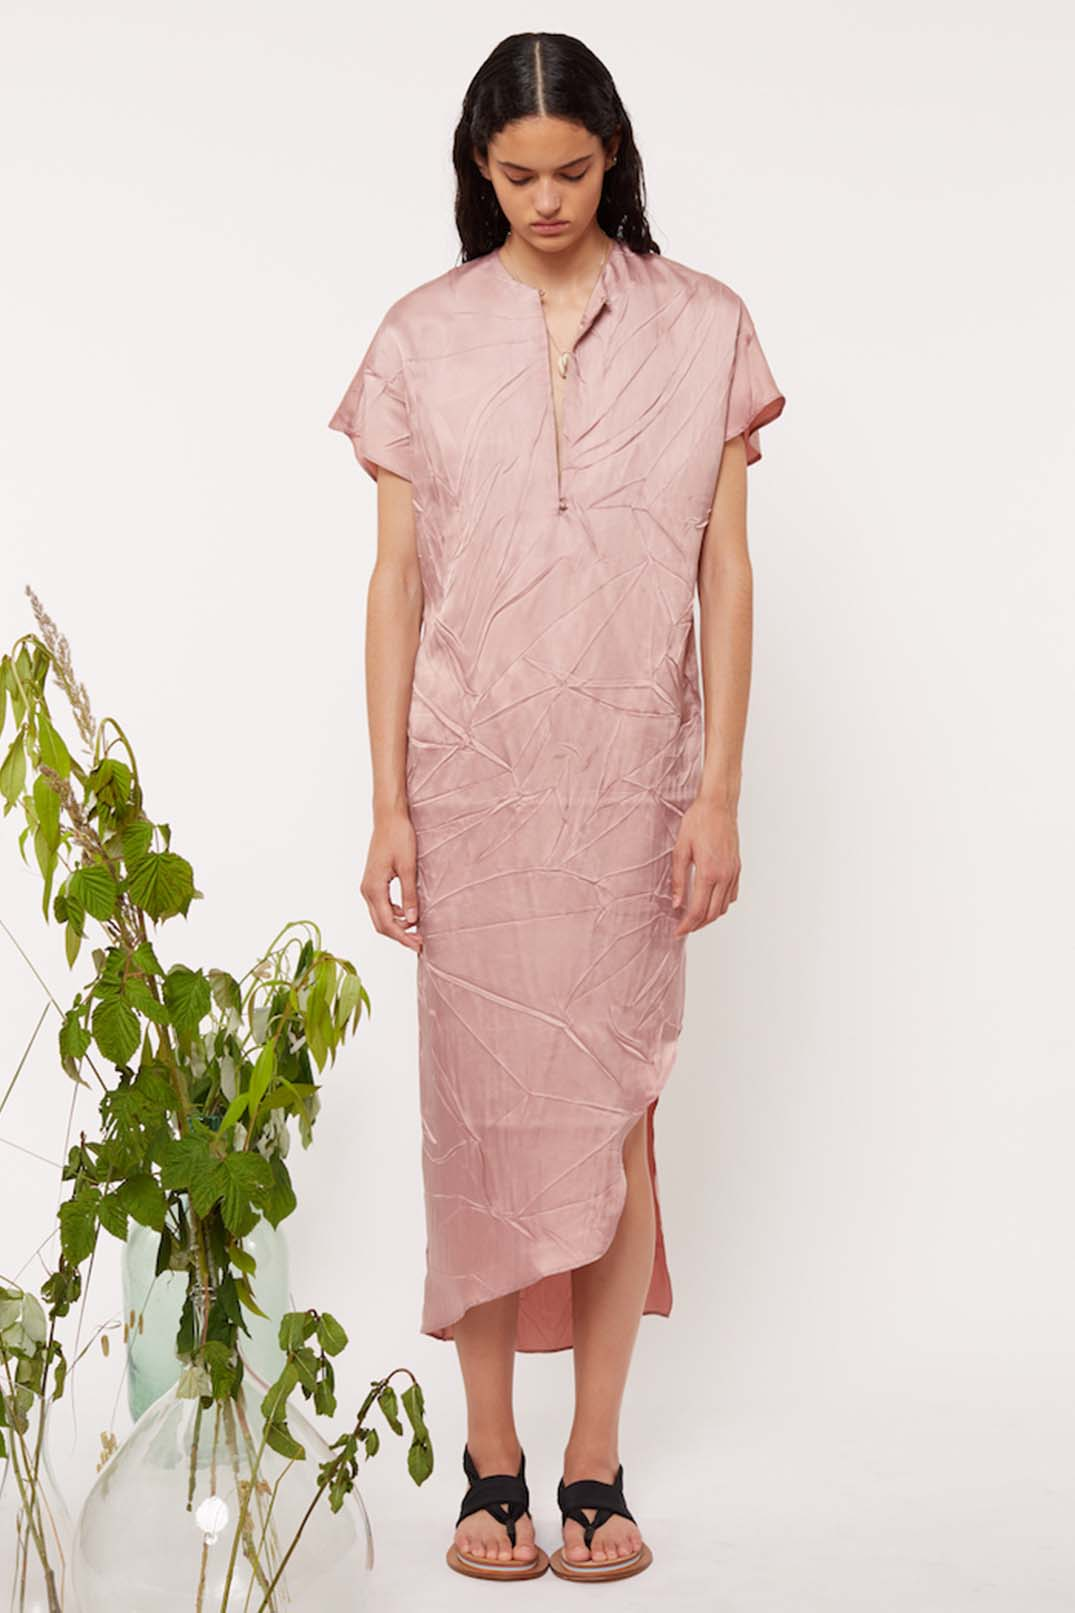 TUNIC CALF LENGTH DRESS - Esteban Cortazar